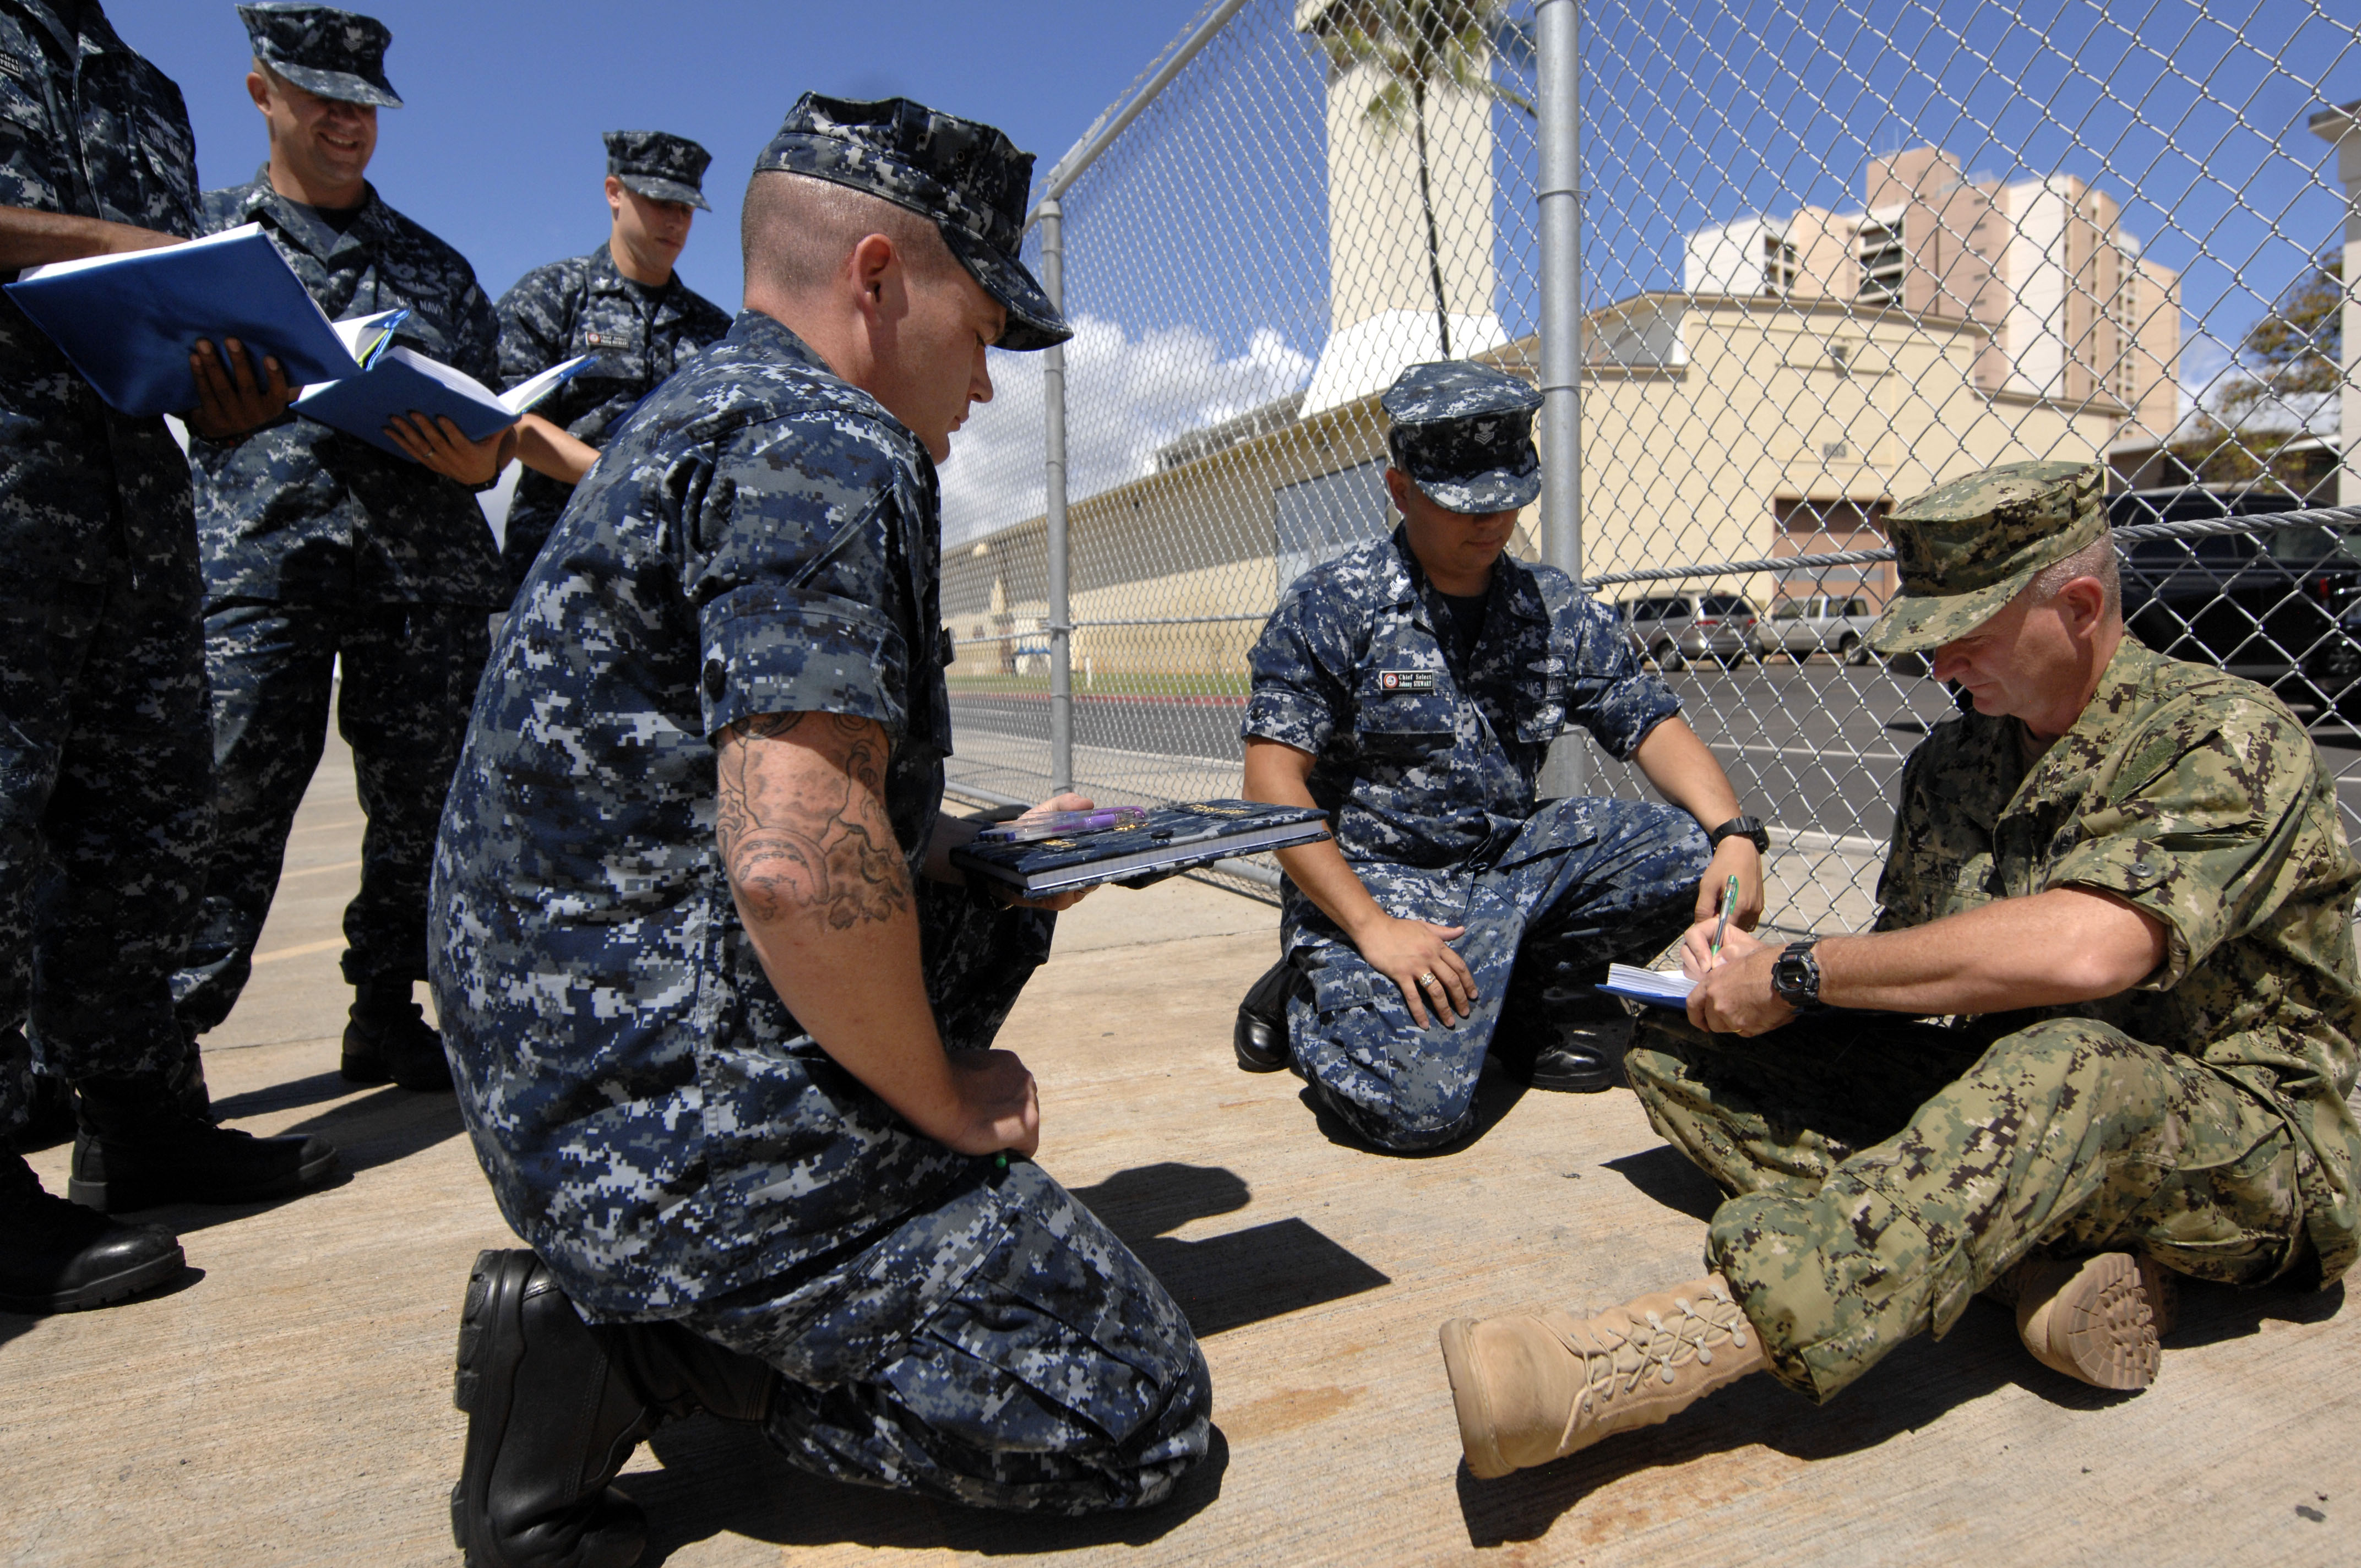 Chief Petty Officer - Naval History and Heritage Command